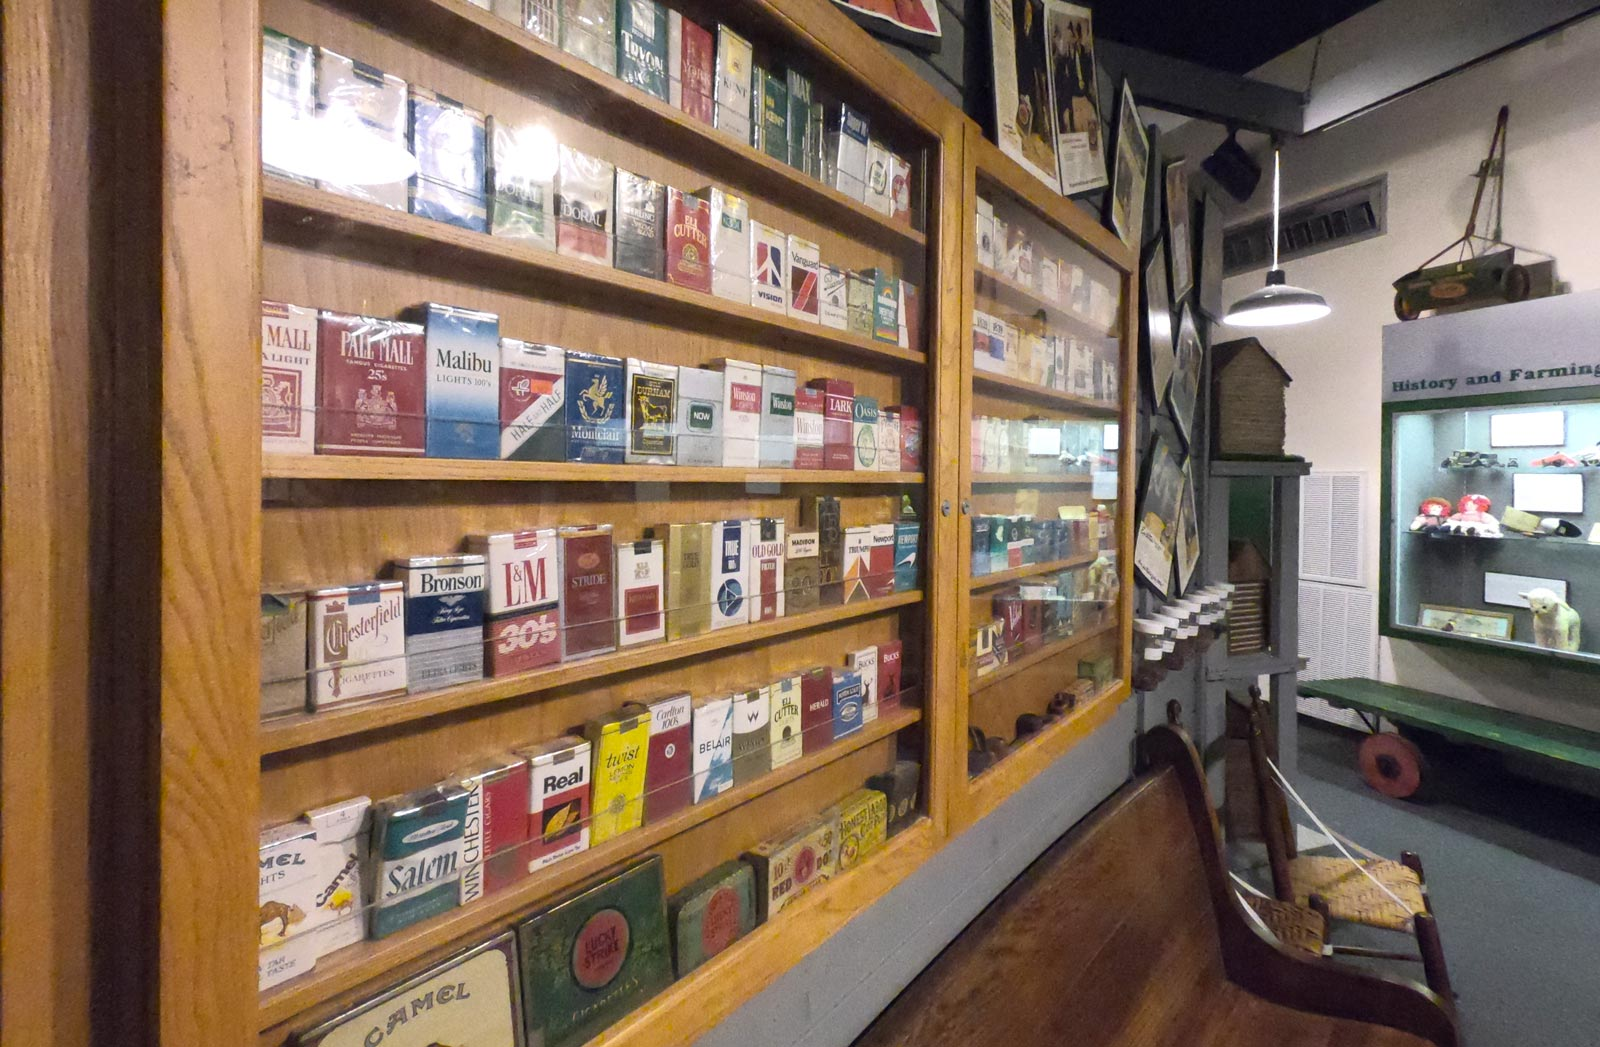 Indoor exhibit featuring different brands of cigarette packs at Tobacco Farm Life Museum, Kenly, North Carolina